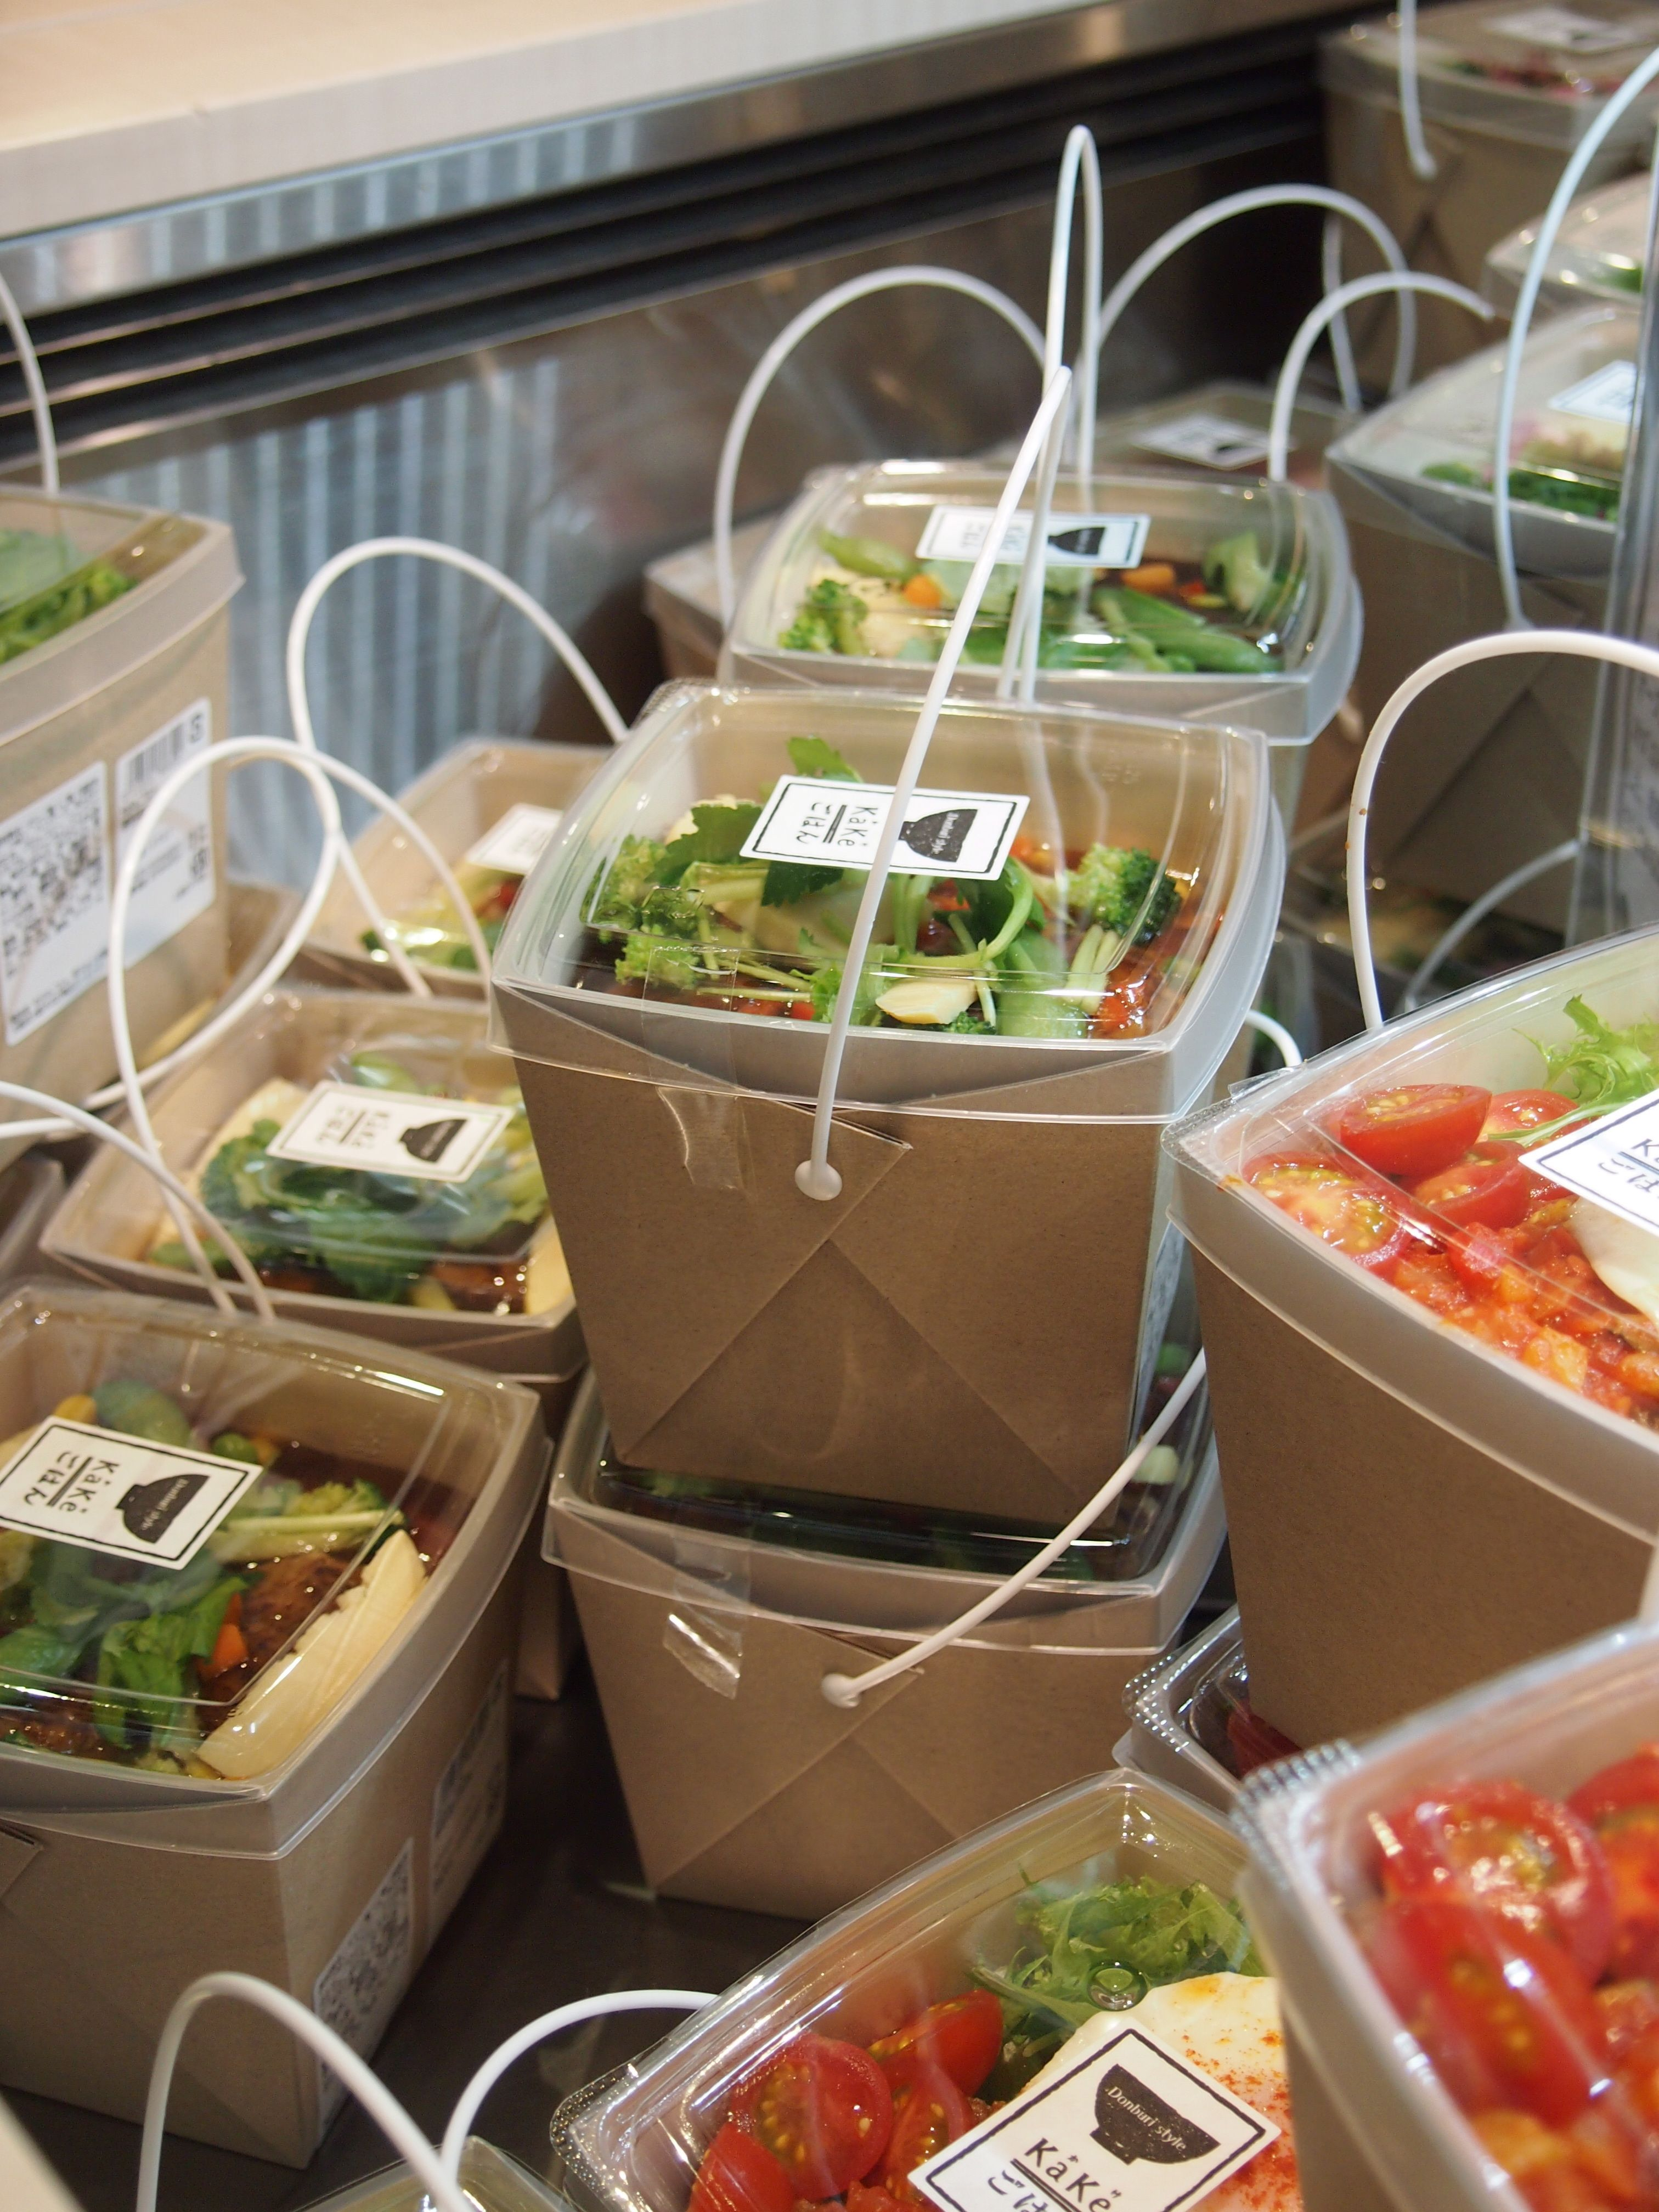 Japanese supermarket takeaway salad containers very classy nb cafe menu food packaging - Envases take away ...